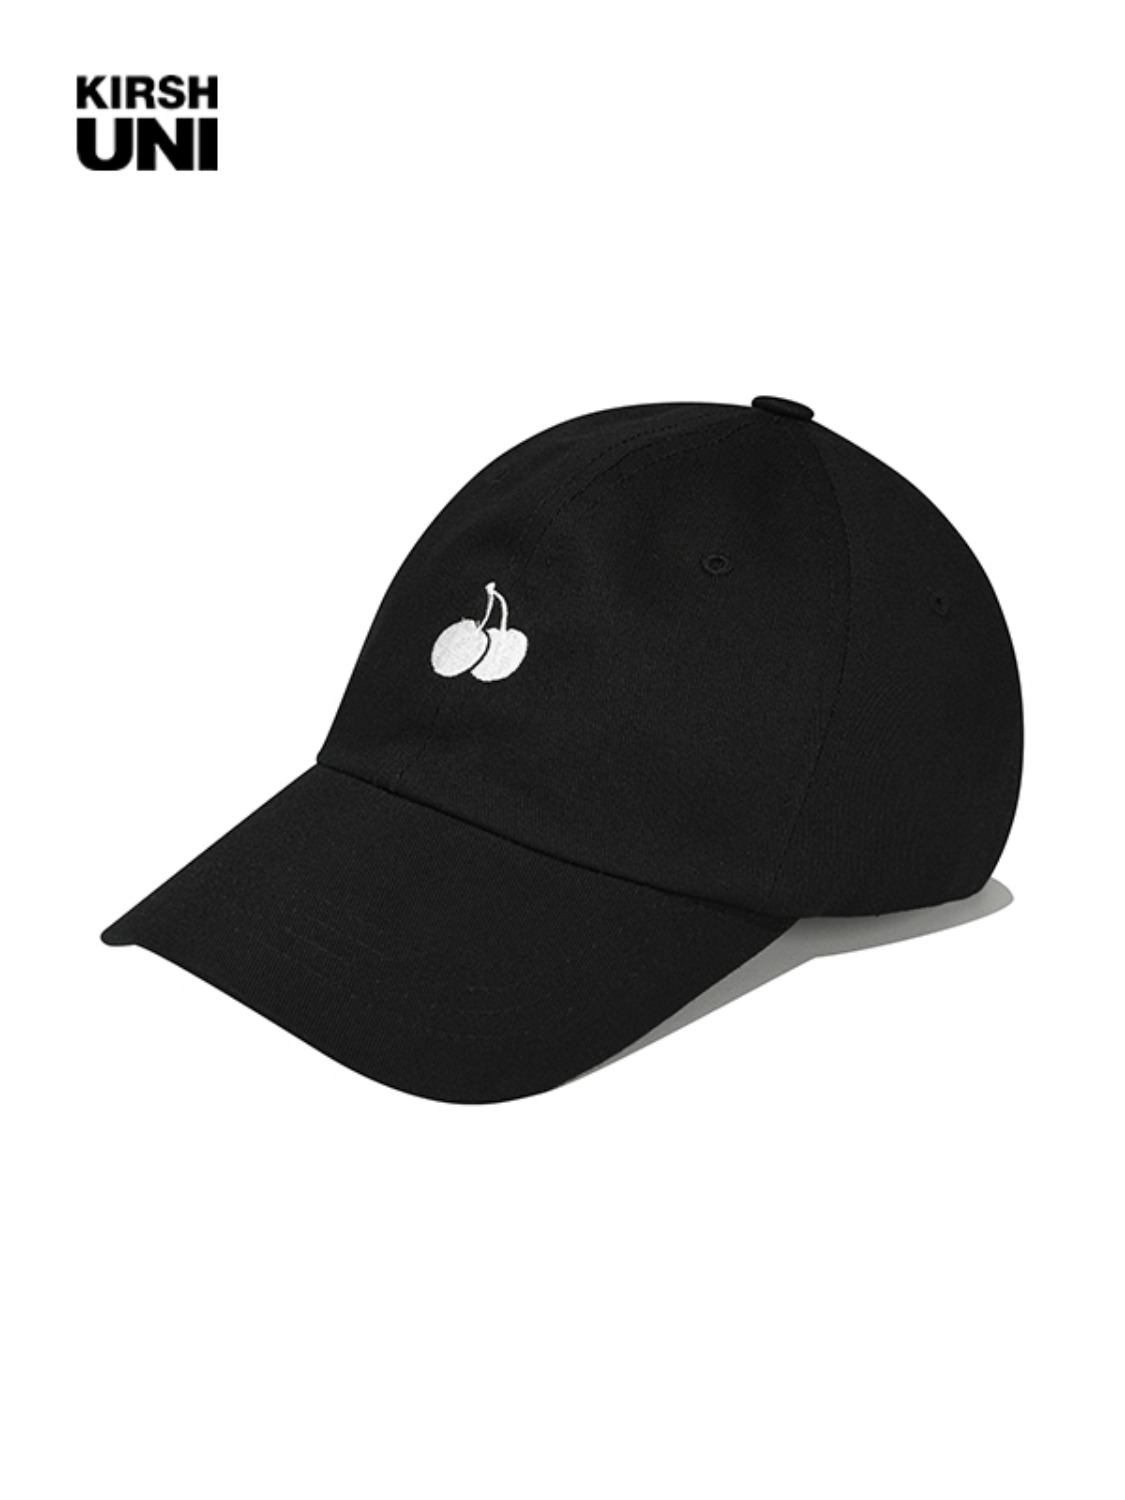 (2월 5일 예약발송)UNI SMALL CHERRY LOGO BALLCAP KS [BLACK]